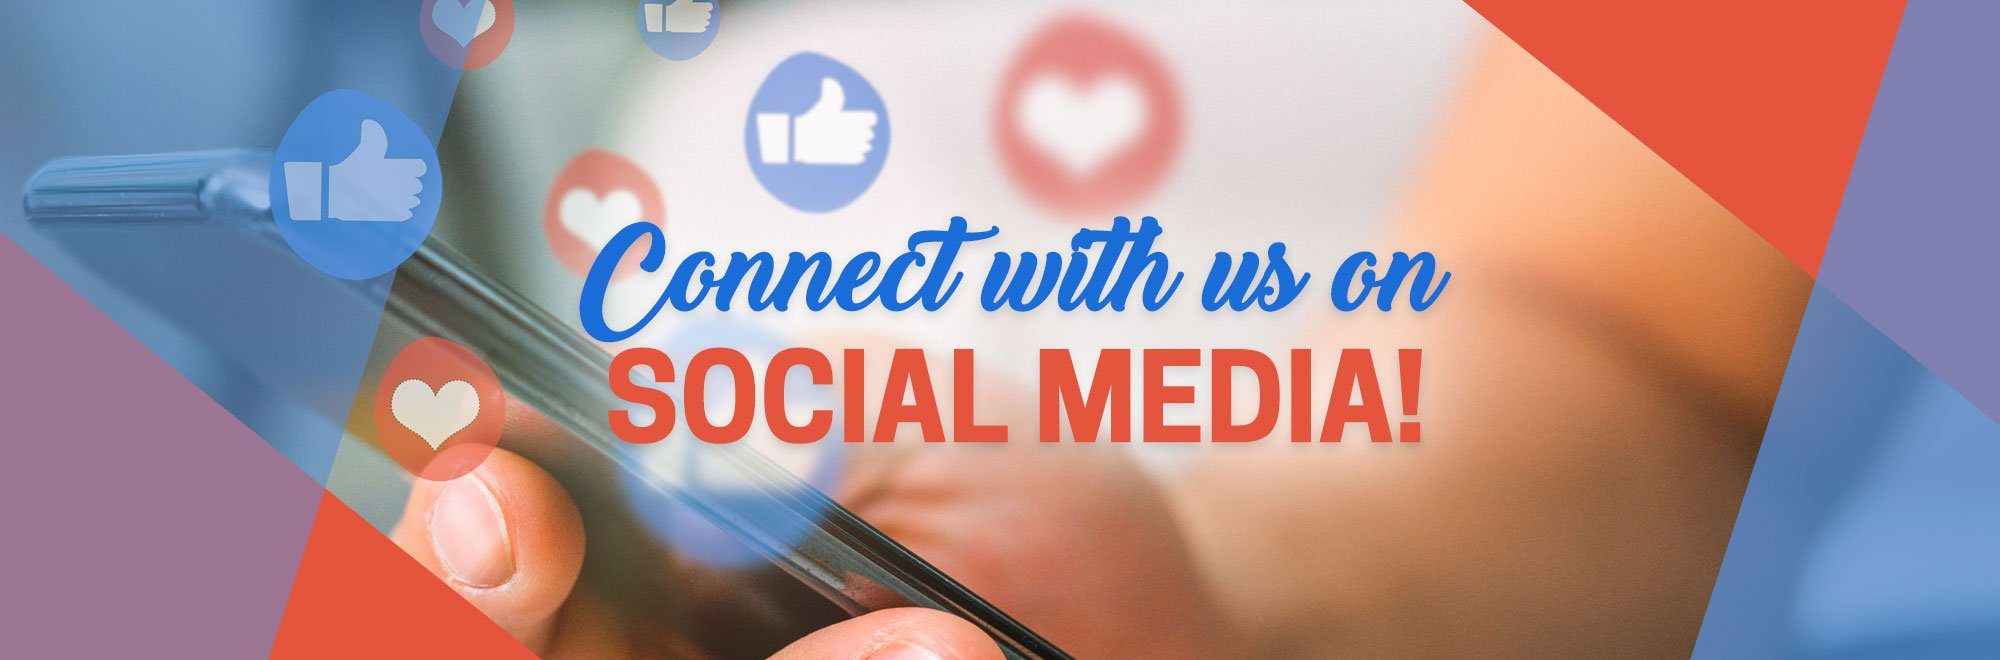 Connect with us on Social Media.